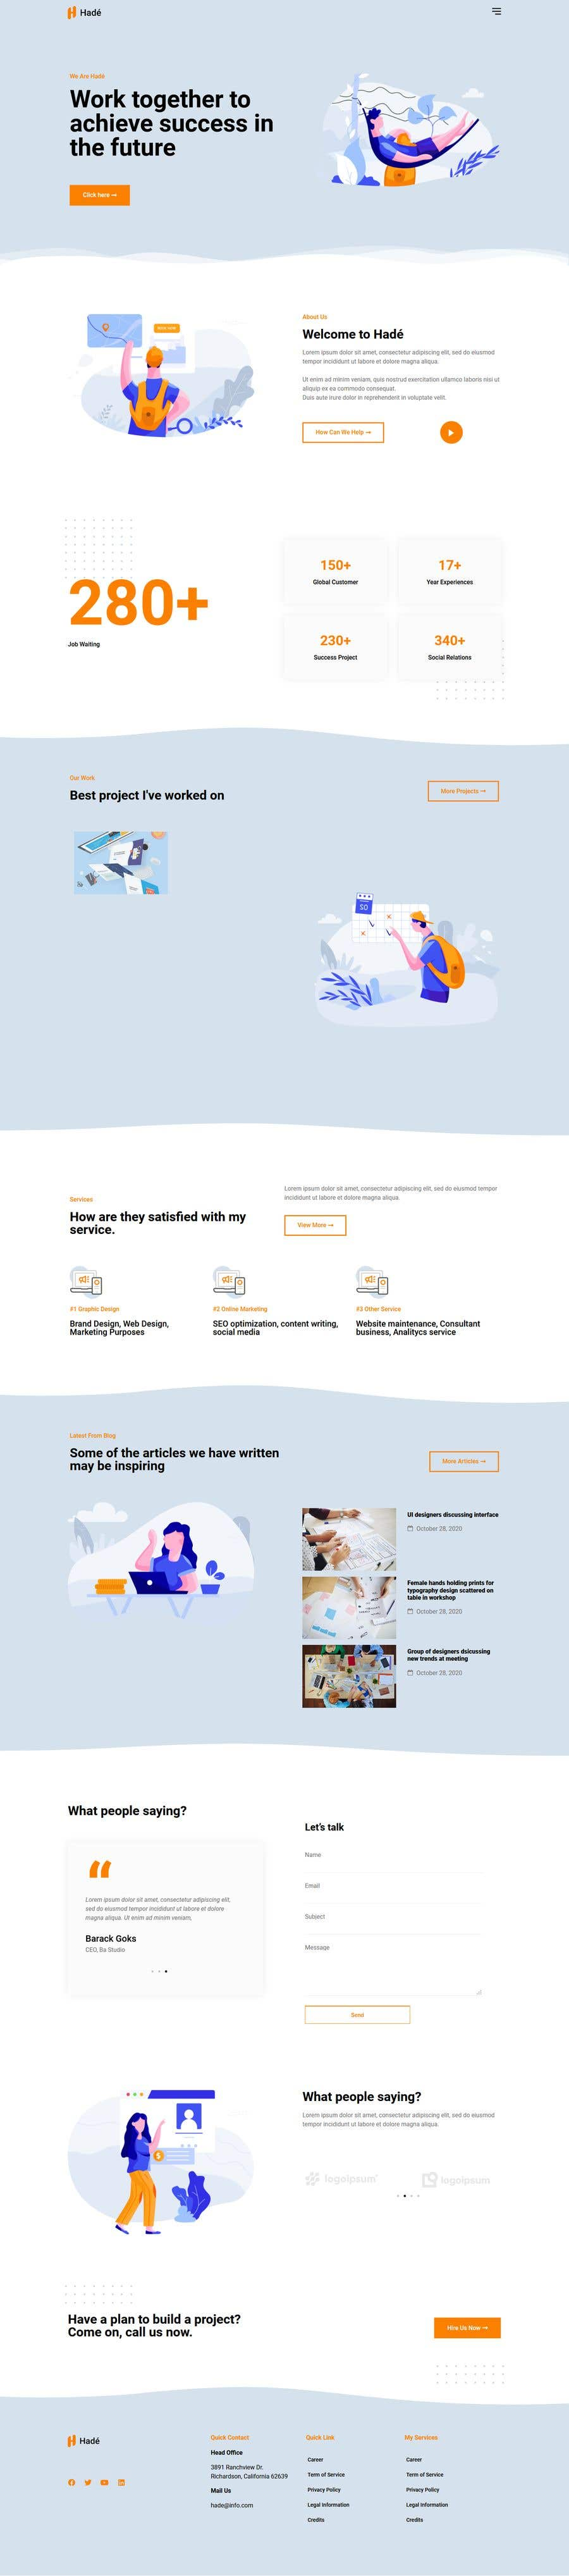 Bài tham dự cuộc thi #                                        53                                      cho                                         I need a Landing Page Website for Small Business Stores